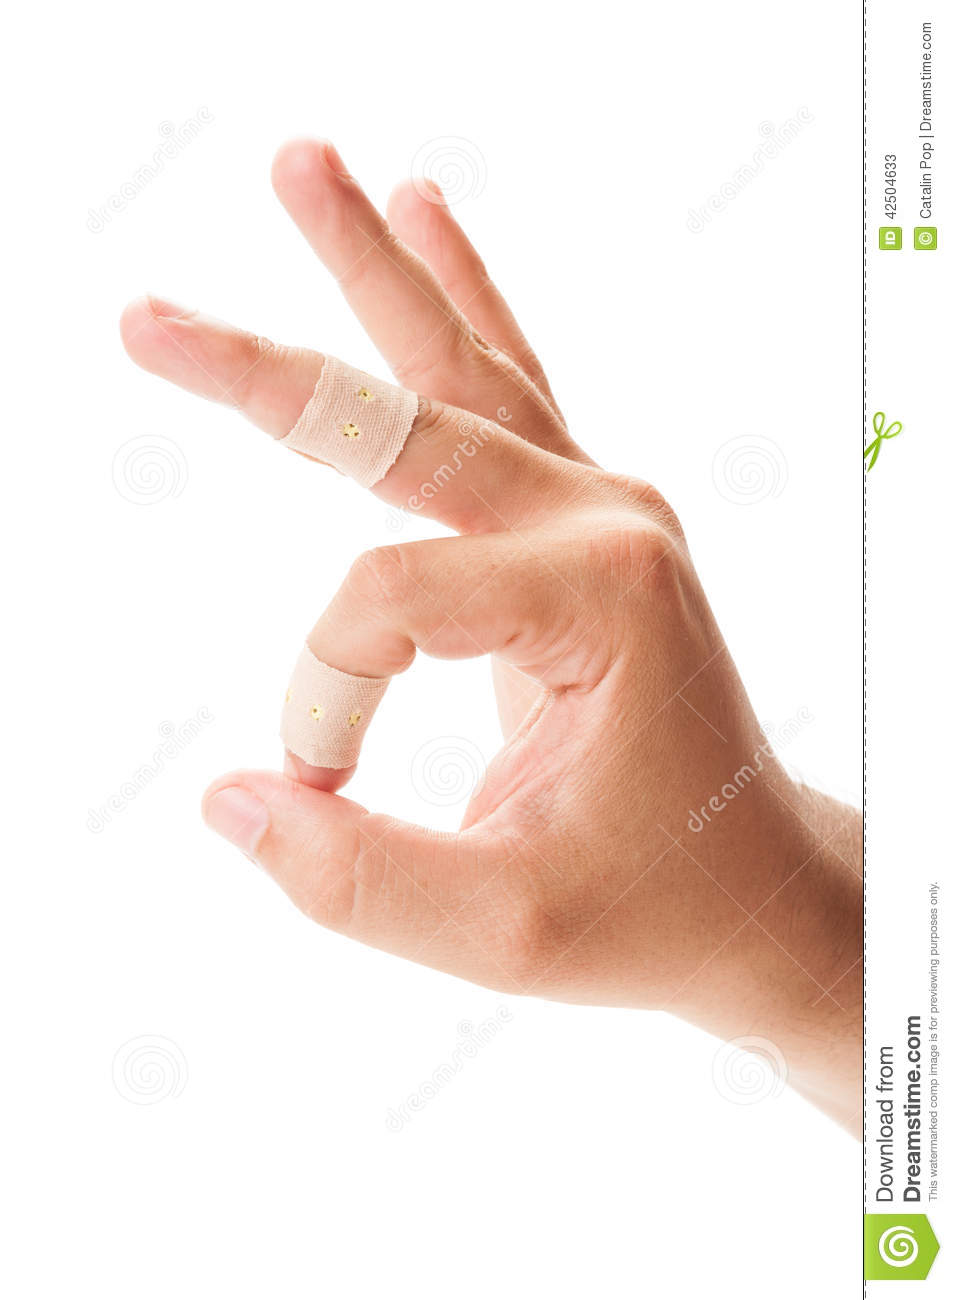 Ok or perfect sign using hand with patches on fingers